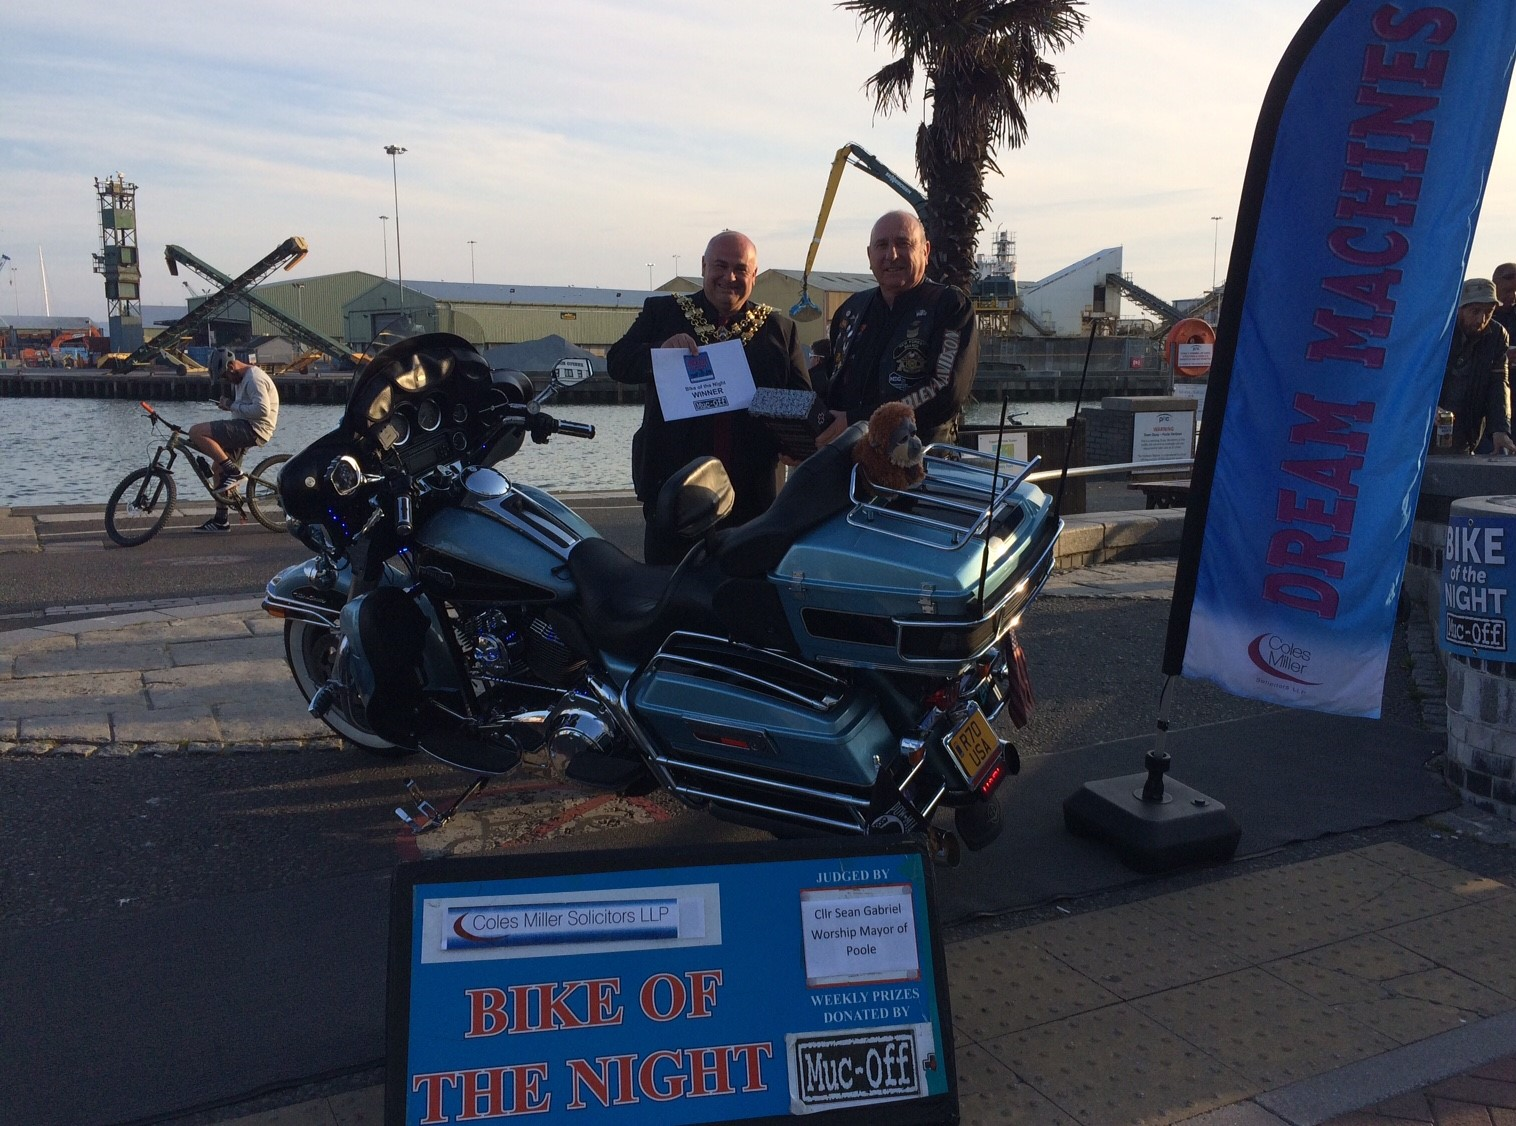 Winning Motorbike and owner on Poole Quay